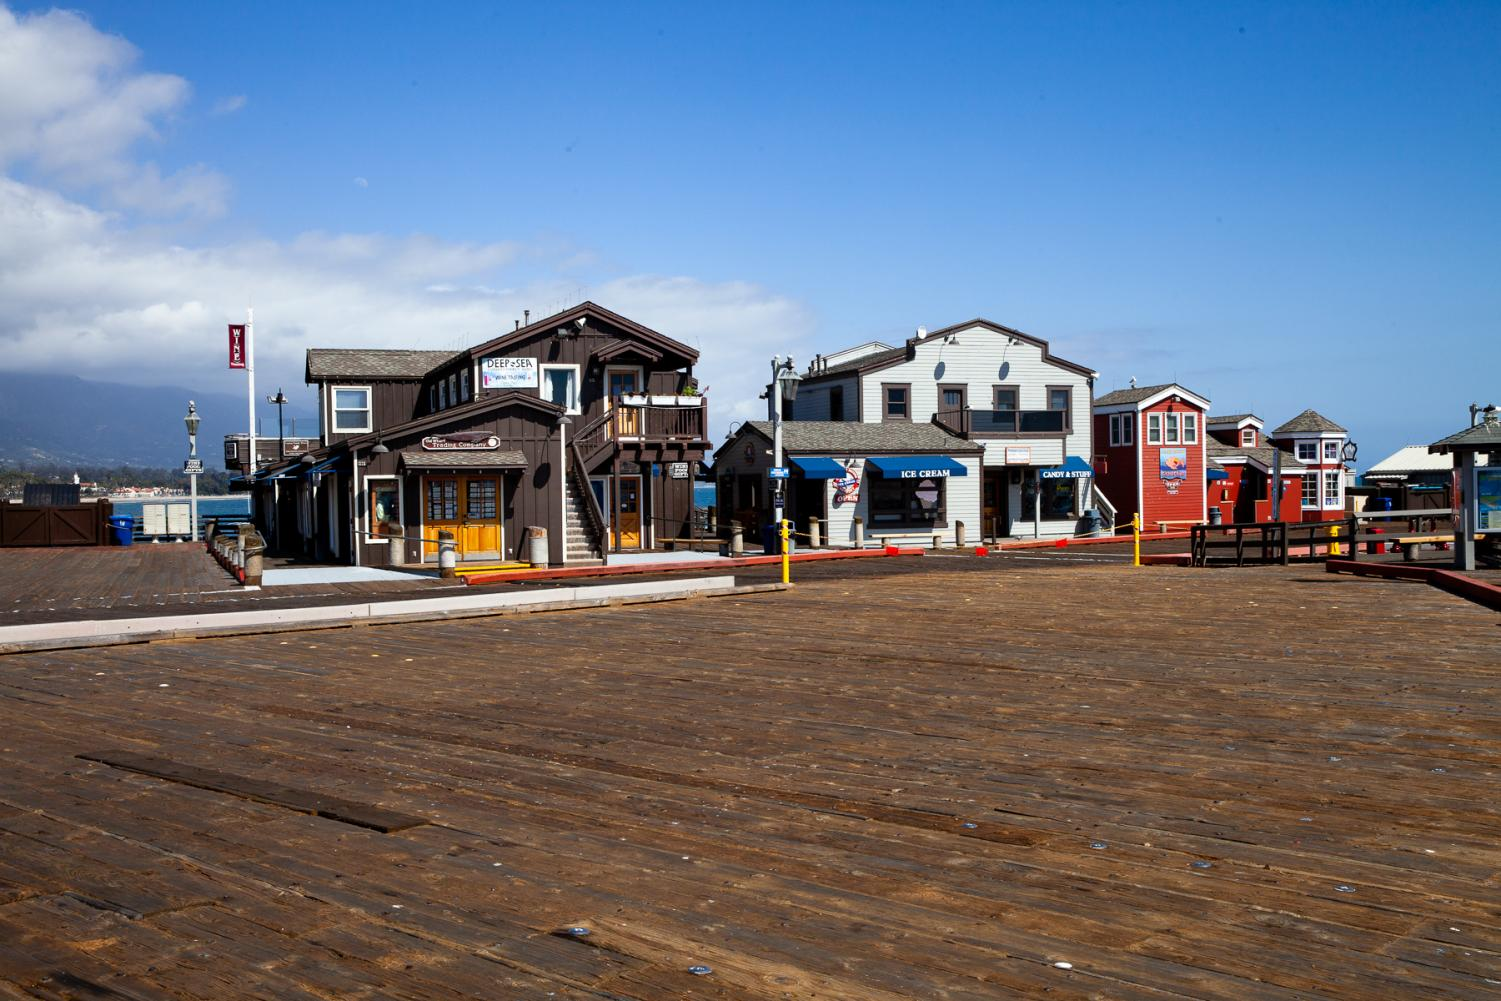 Restaurants and shops on Stearns Wharf remain open but see little traffic as shelter-in-place measures continue through April.